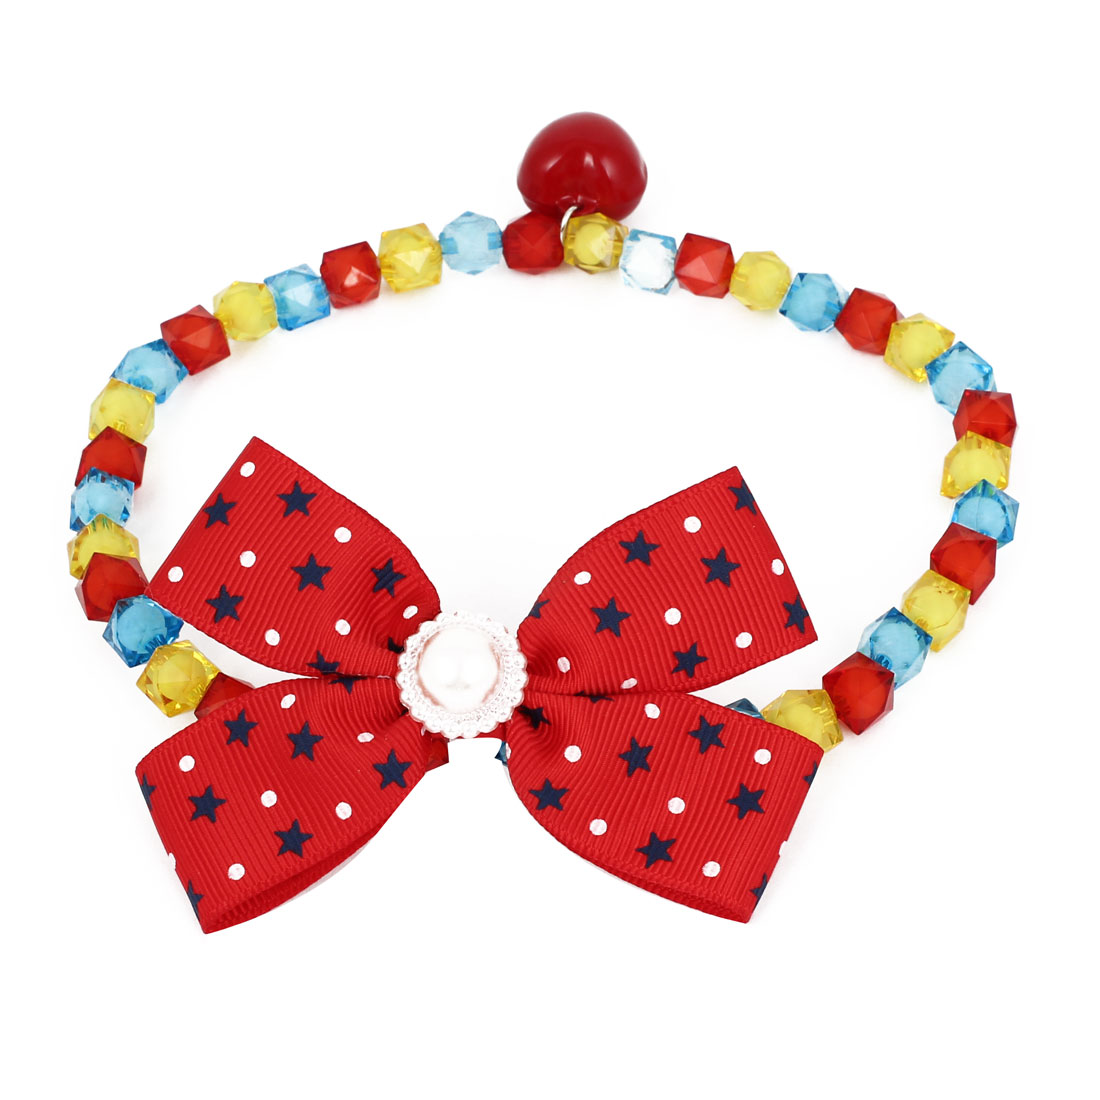 Metal Bell Pendant Bowtie Accent Pet Dog Plastic Faceted Beads Collar Necklace Multi Color M